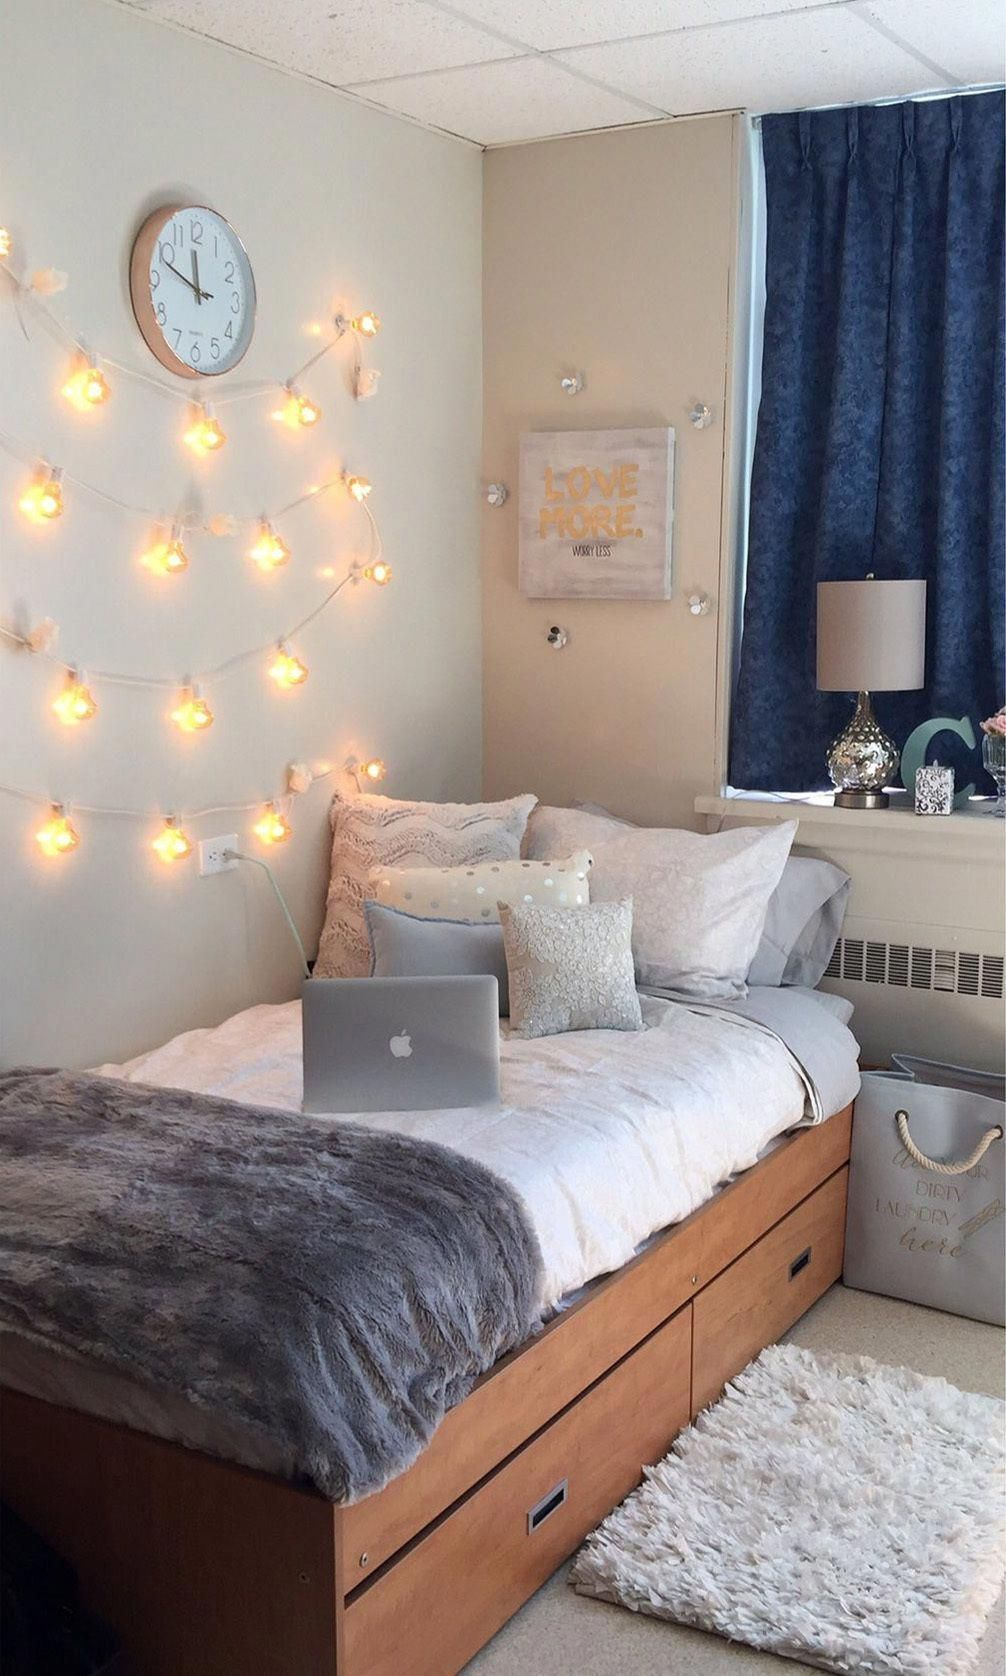 48 Genius Diy Dorm Room Decorating Ideas images